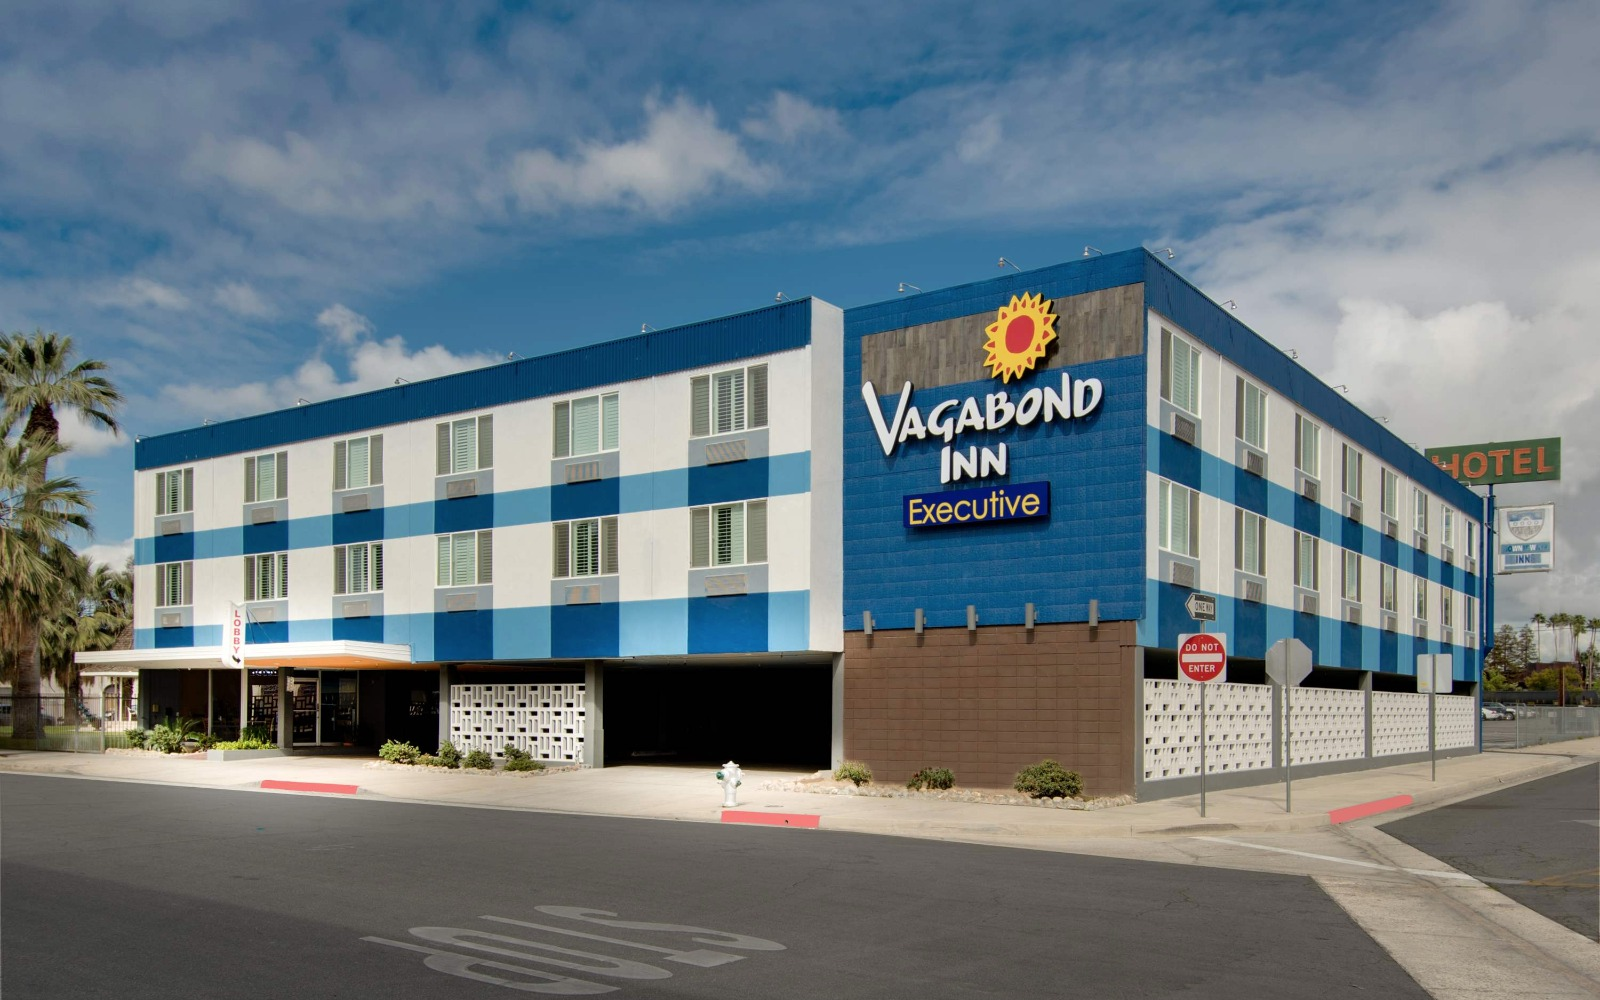 Central Calfiornia Vagabond Inn Executive Bakersfield Downtowner